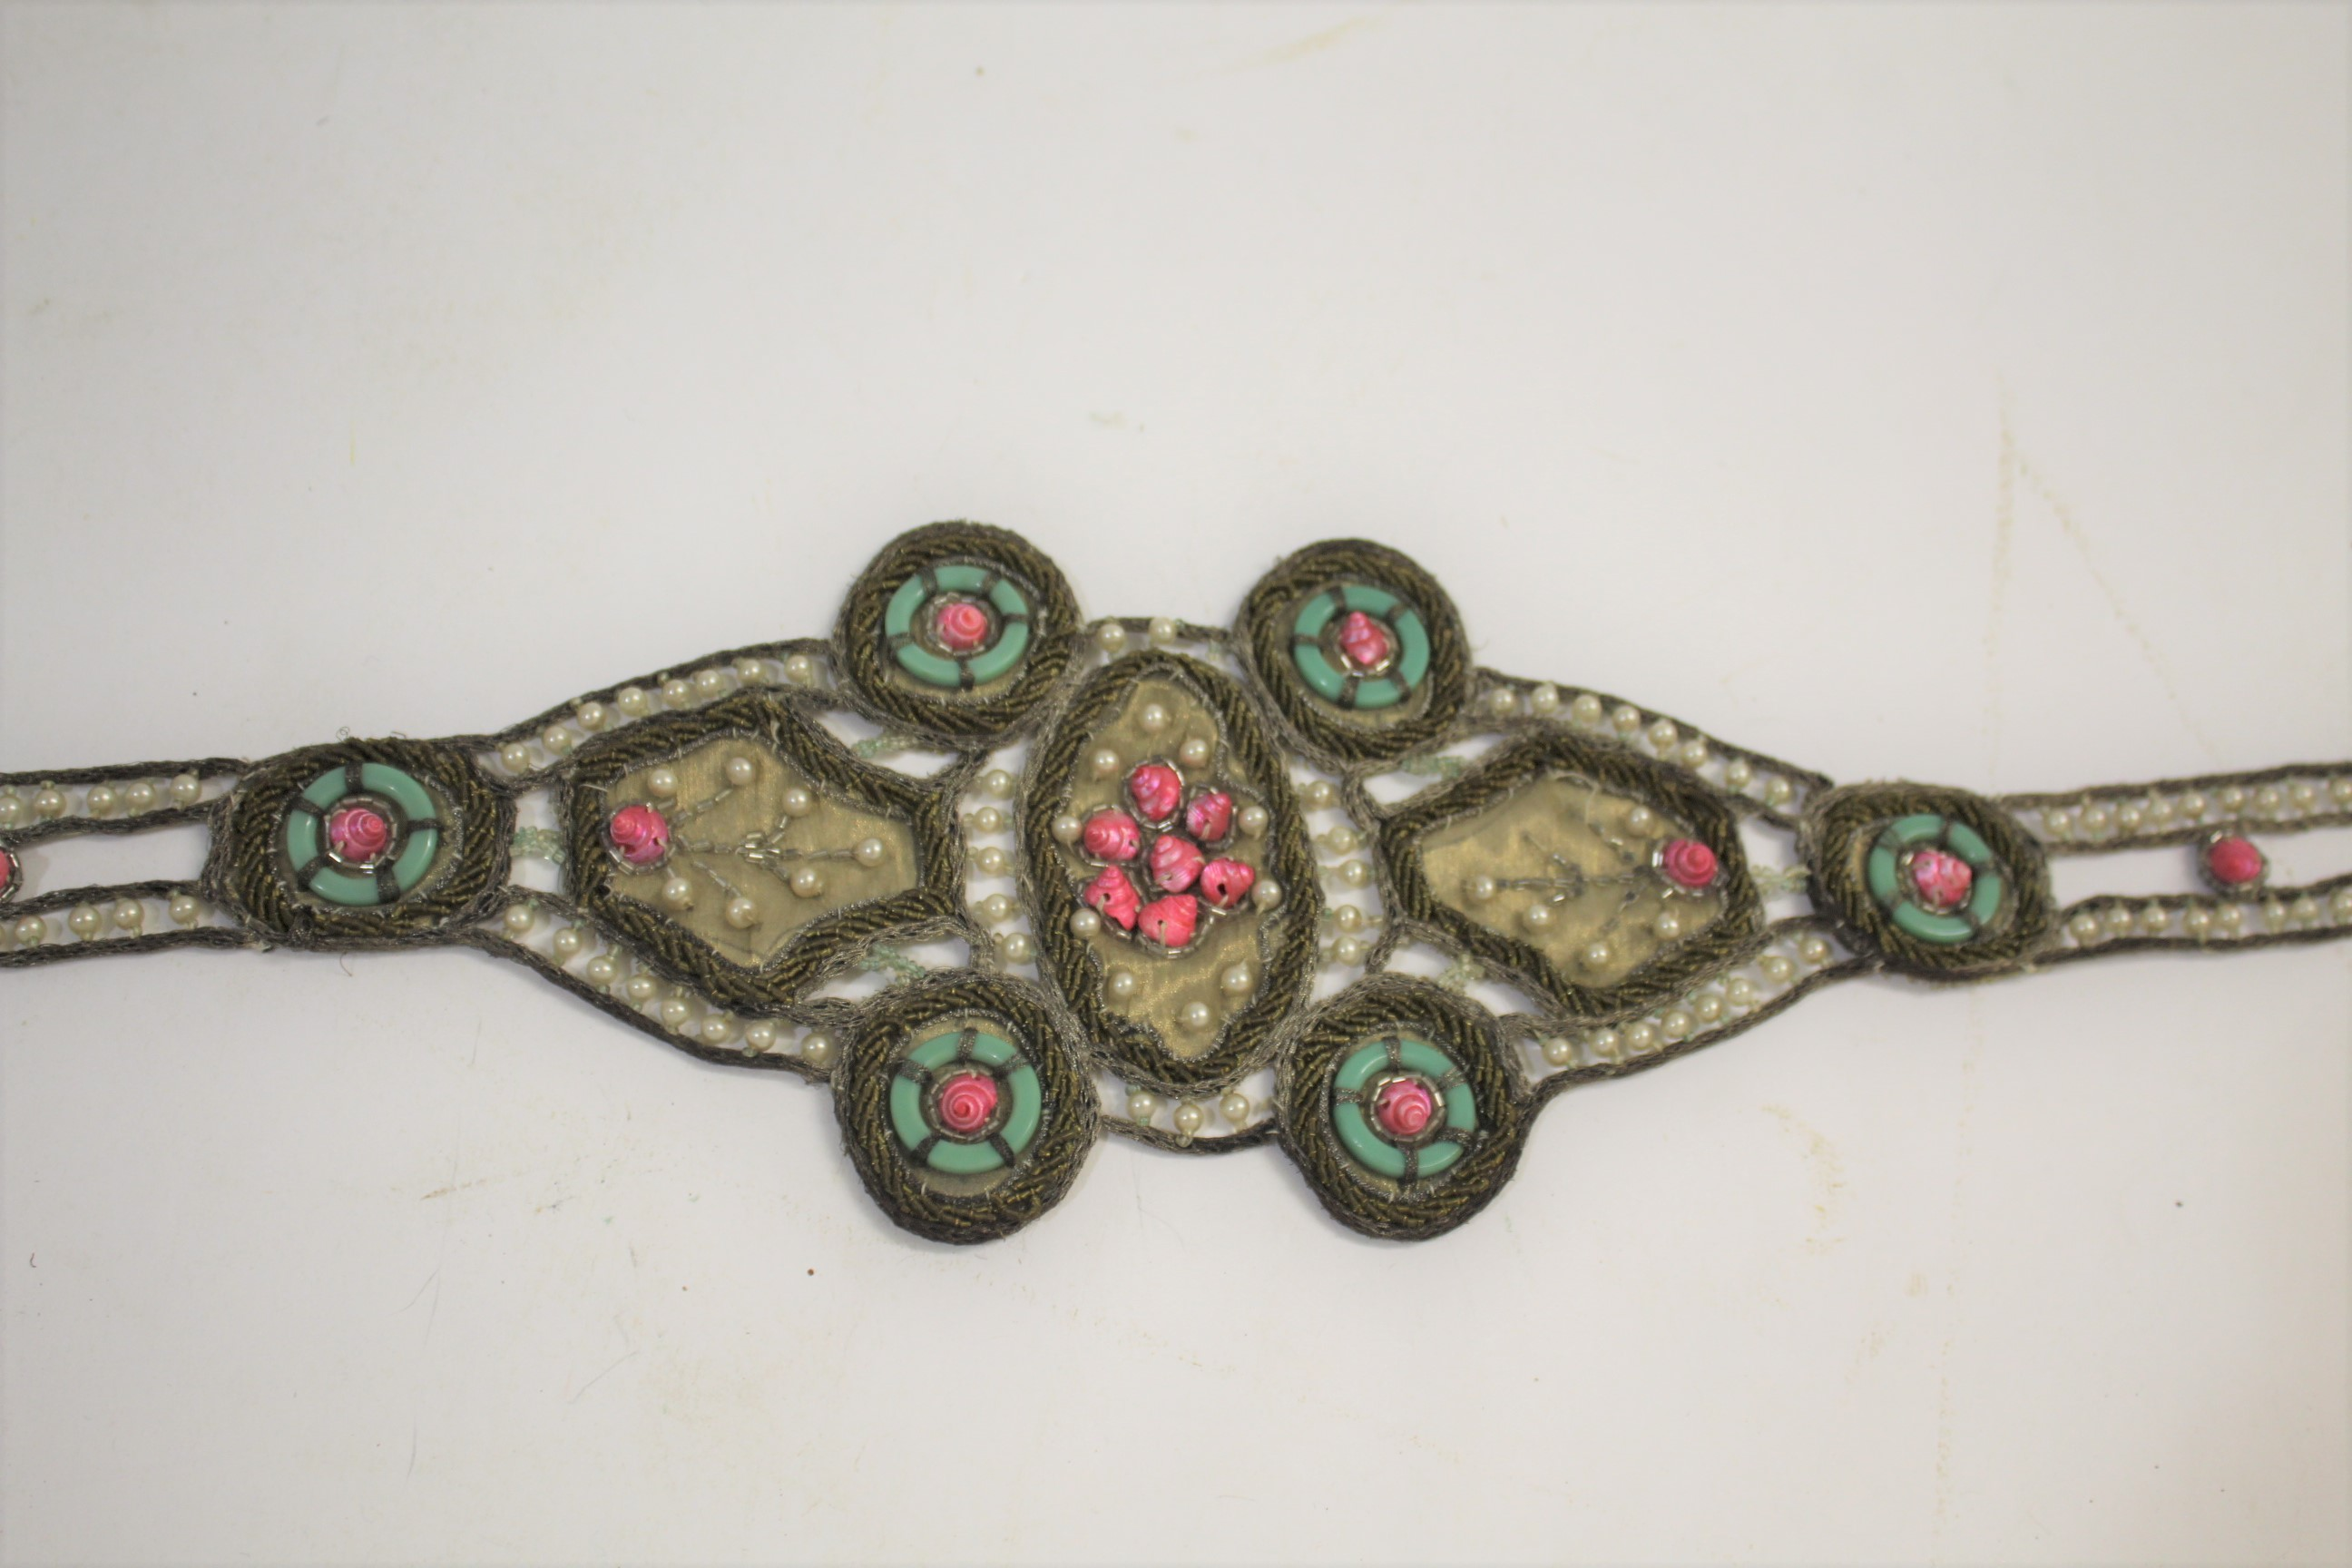 Lot 1888 - EARLY 20THC EMBROIDERED SHELL BELT an interesting early 20thc belt made from embroidered lame